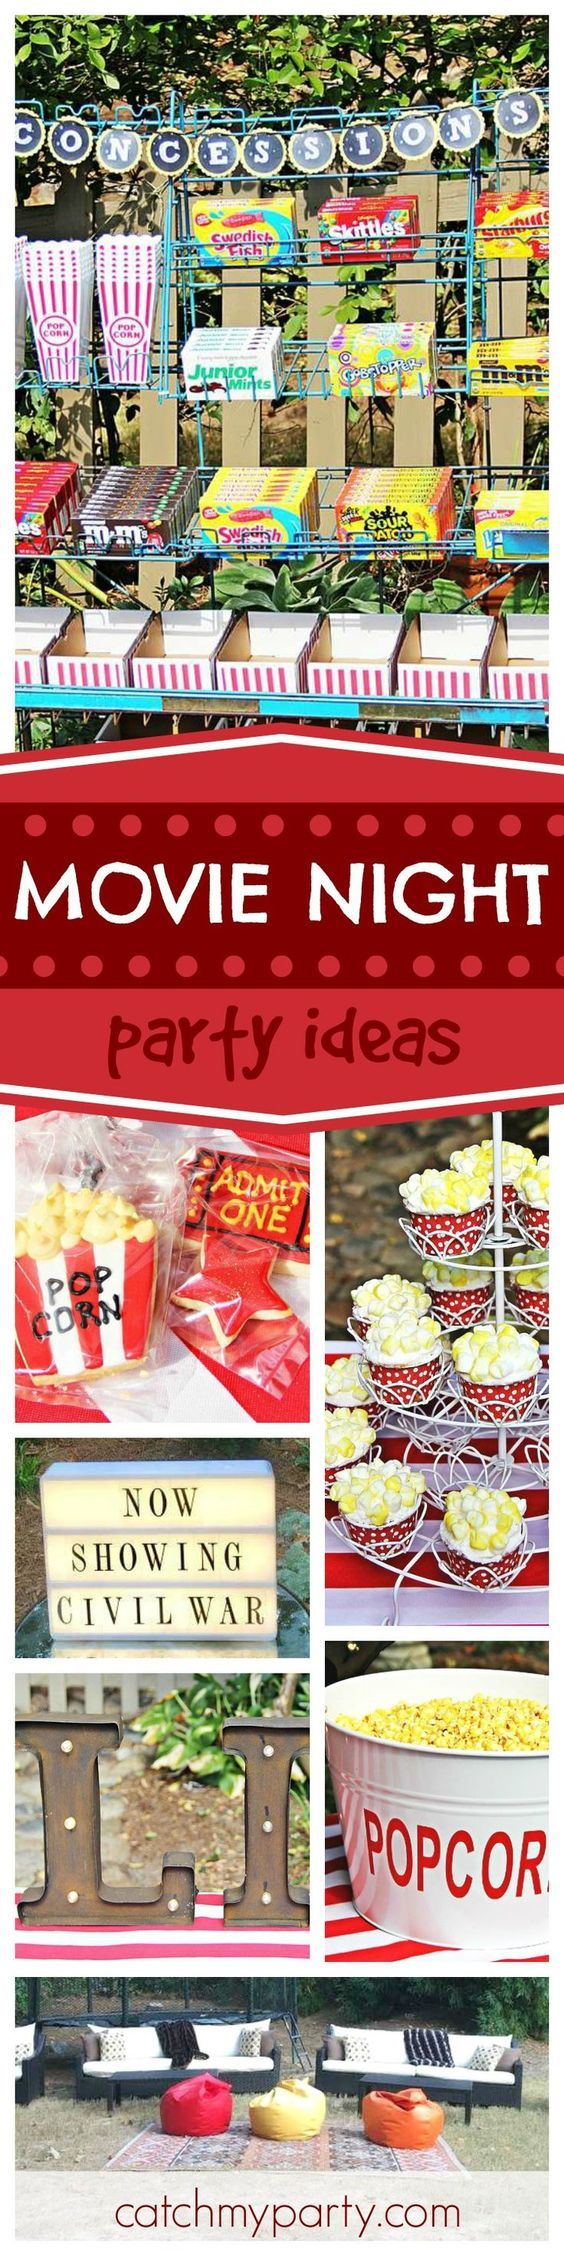 74 best outdoor movies images on pinterest outdoor movie nights